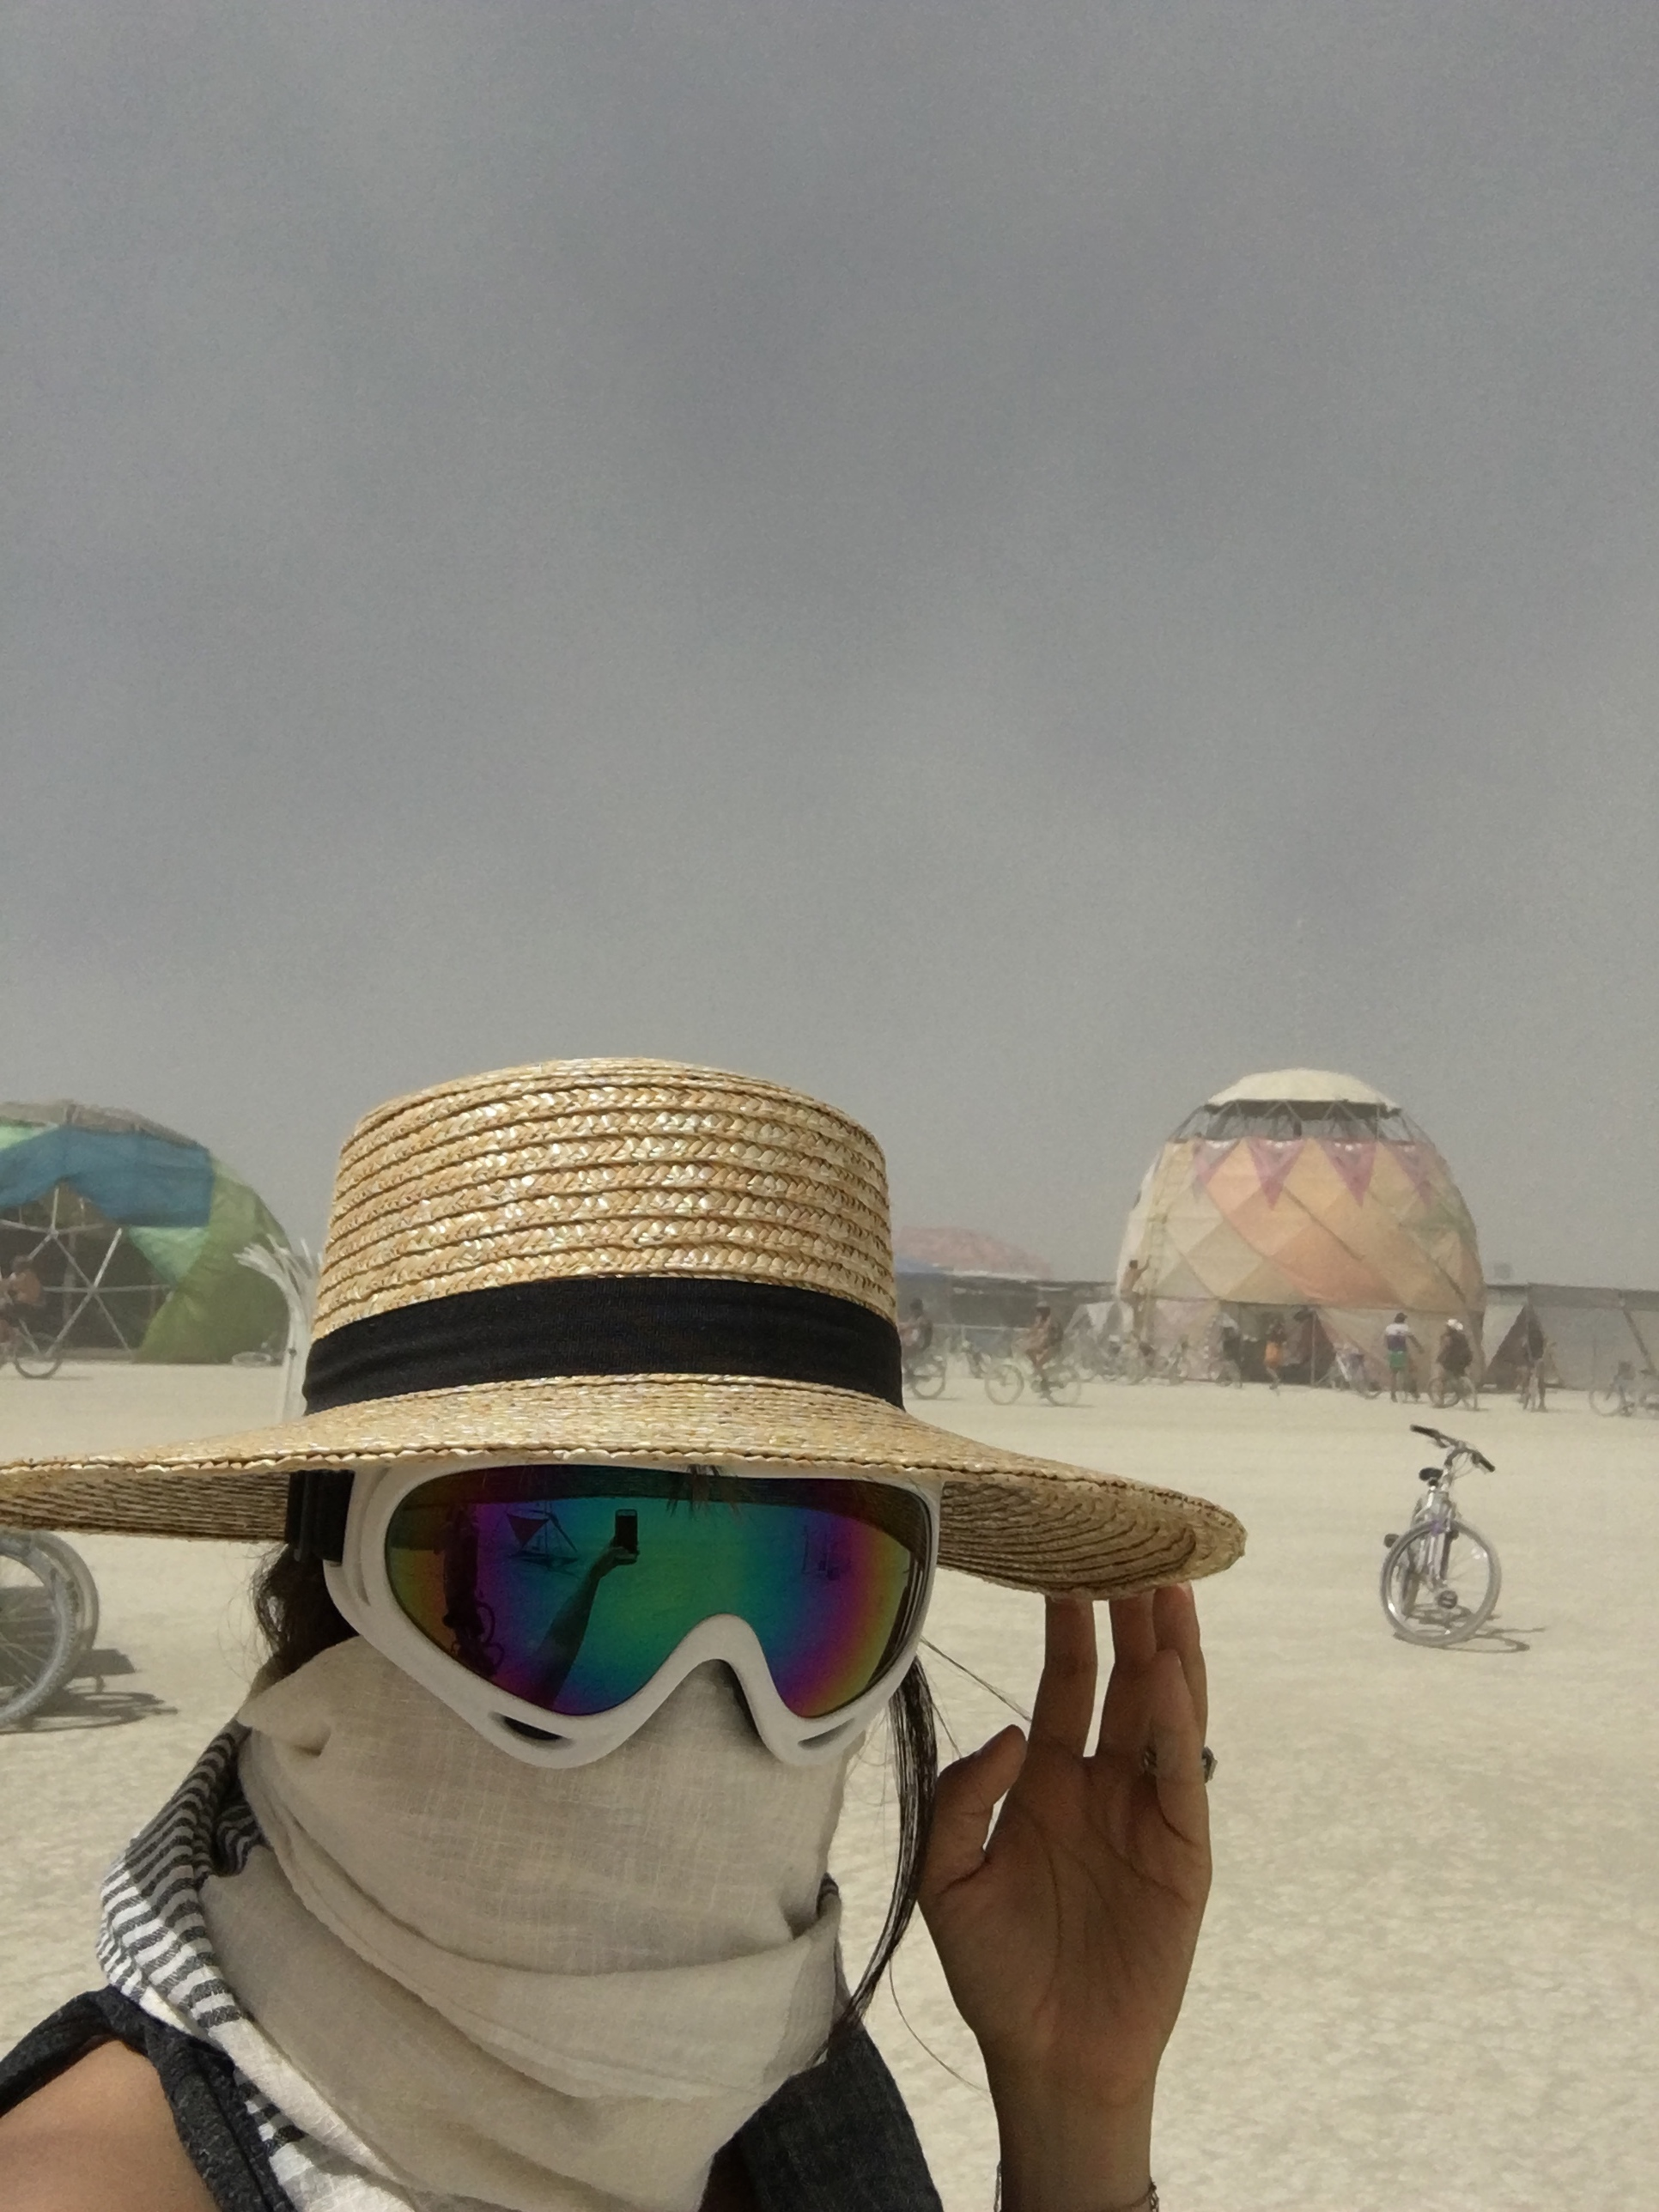 crazy dust storms means full protective gear